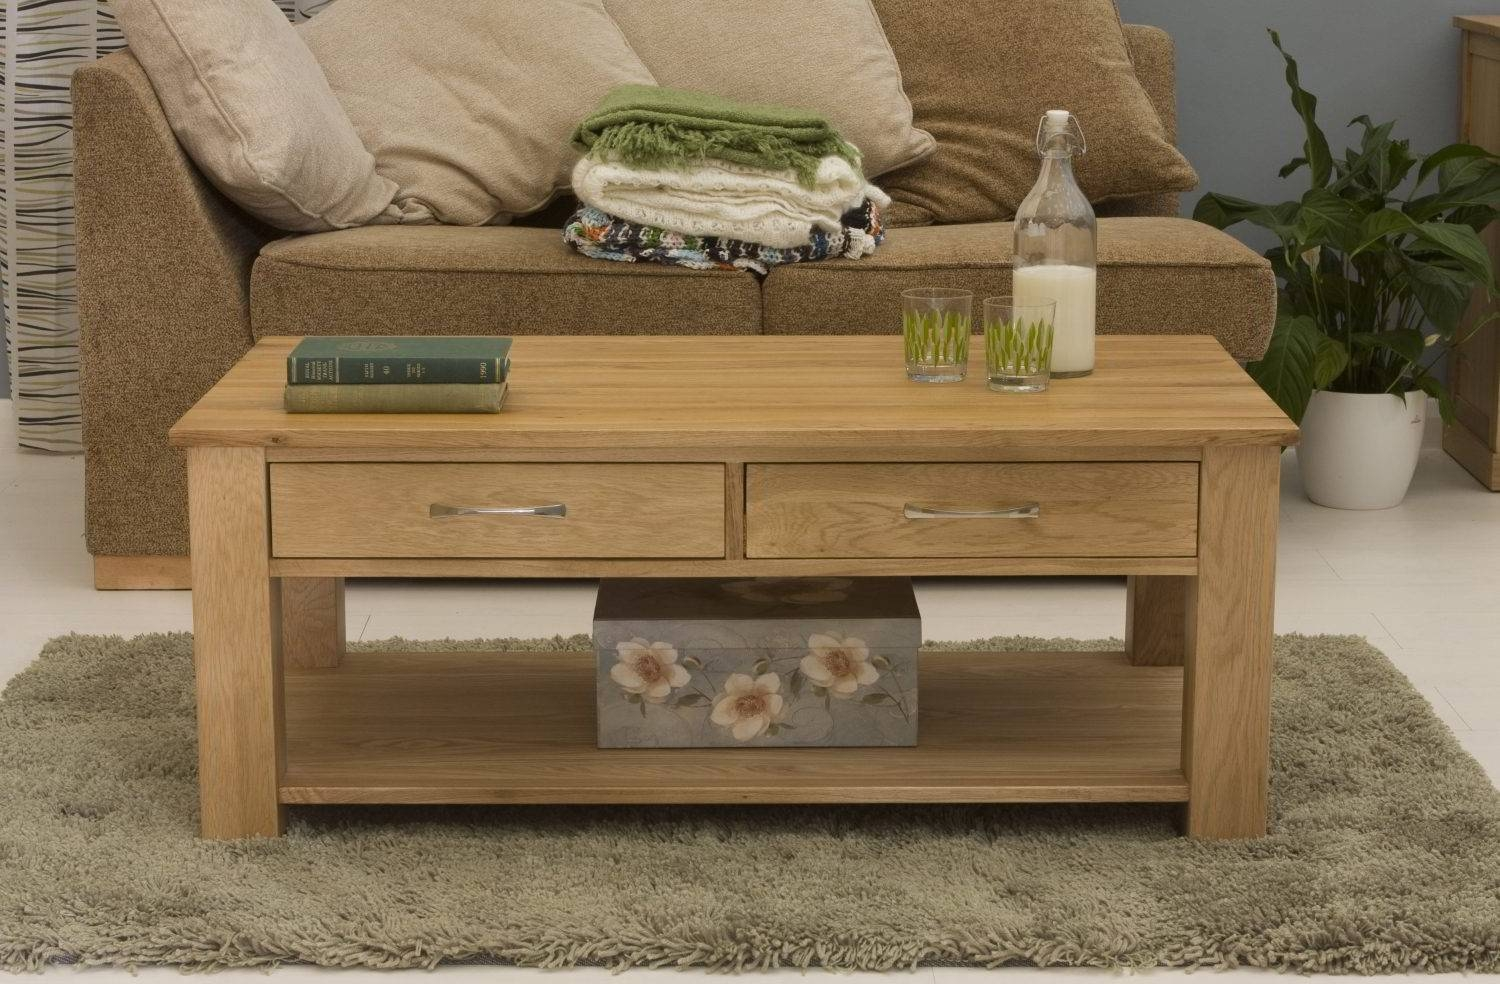 Conran Solid Oak Living Room Lounge Furniture Four Drawer Storage with regard to Solid Oak Coffee Tables (Image 6 of 15)